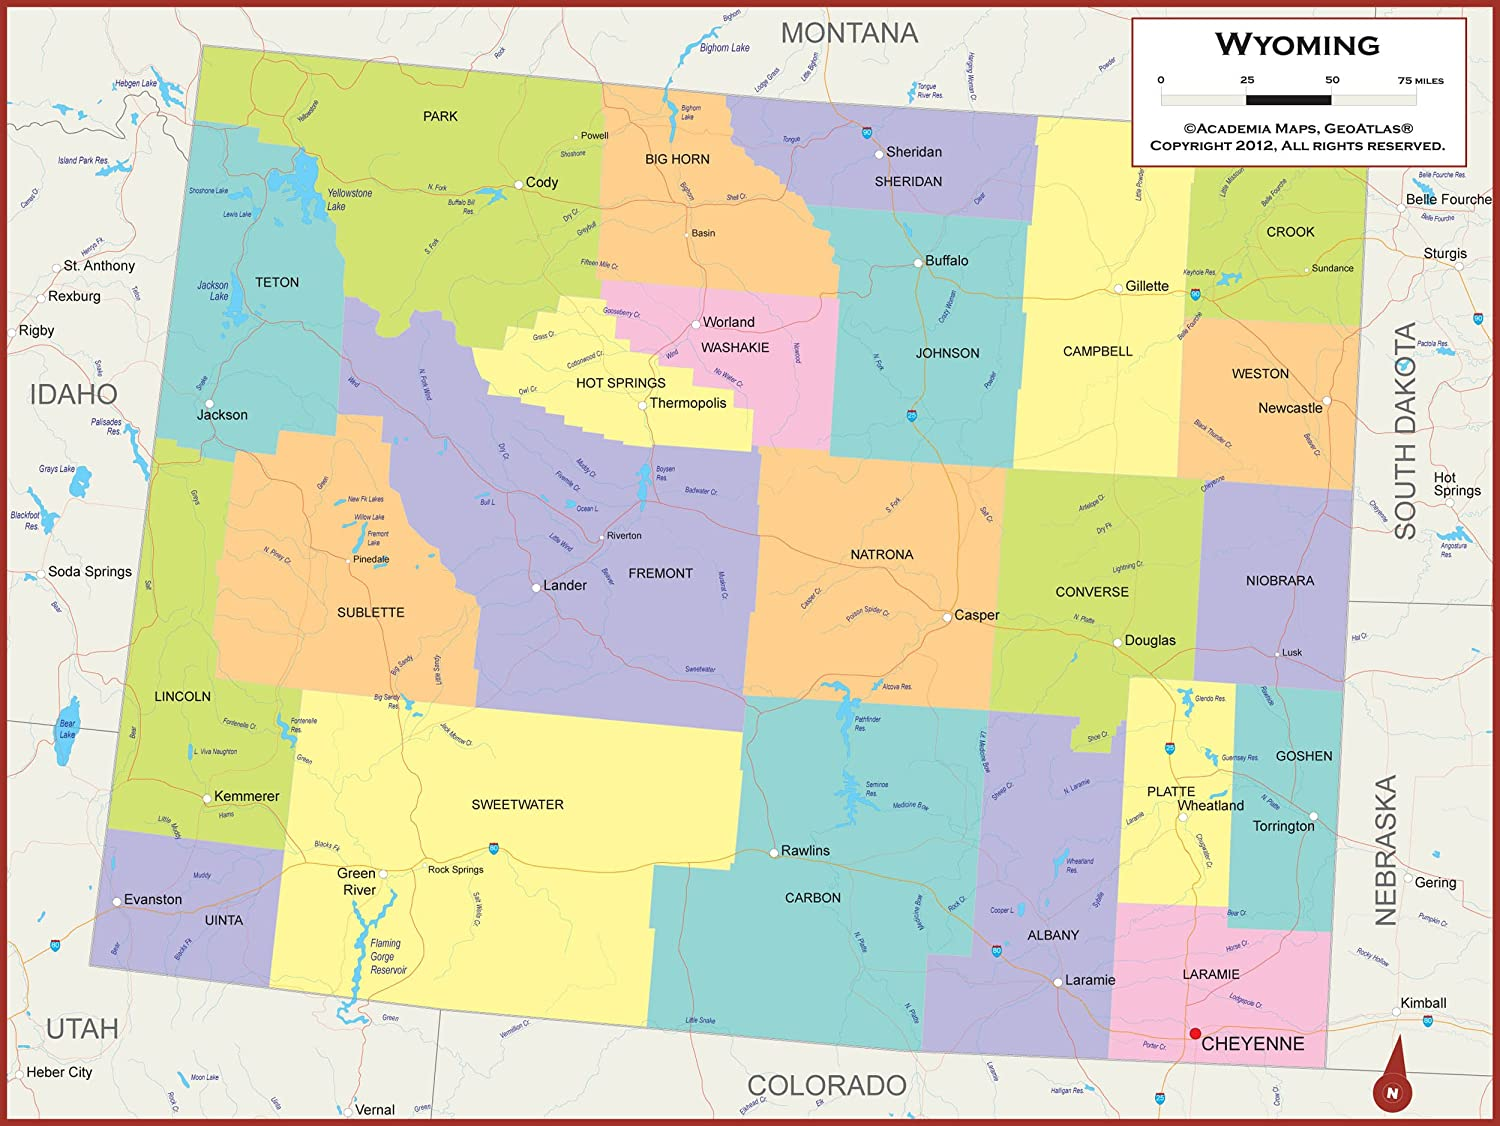 Amazon.com : 42 x 32 Wyoming State Wall Map Poster with Counties ...